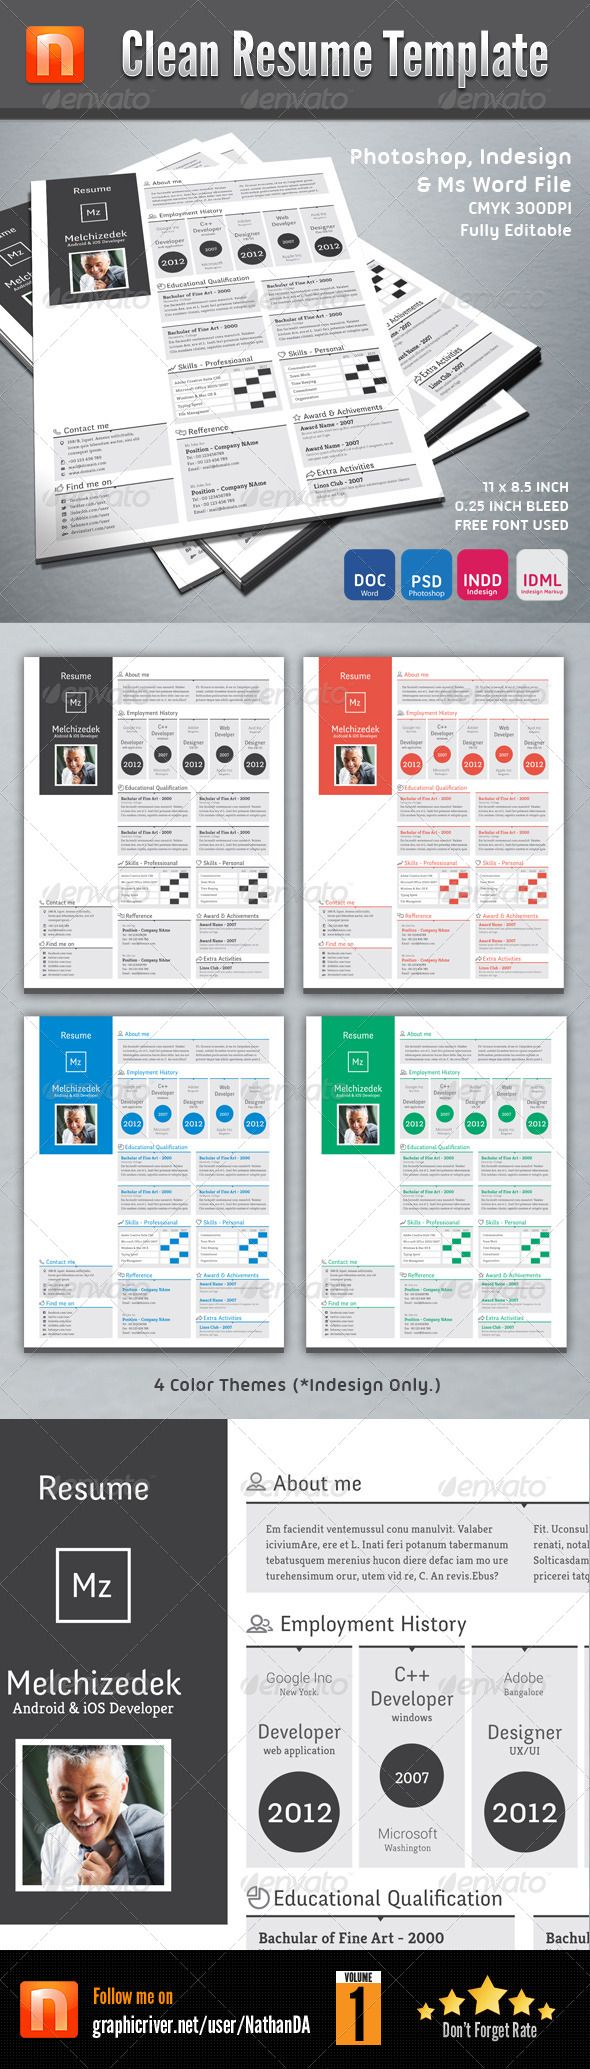 Clean Resume Template V1 GraphicRiver Information Ms Word File Docx Doc Photoshop Psd Indesign Indd Idml 4 Color Theme